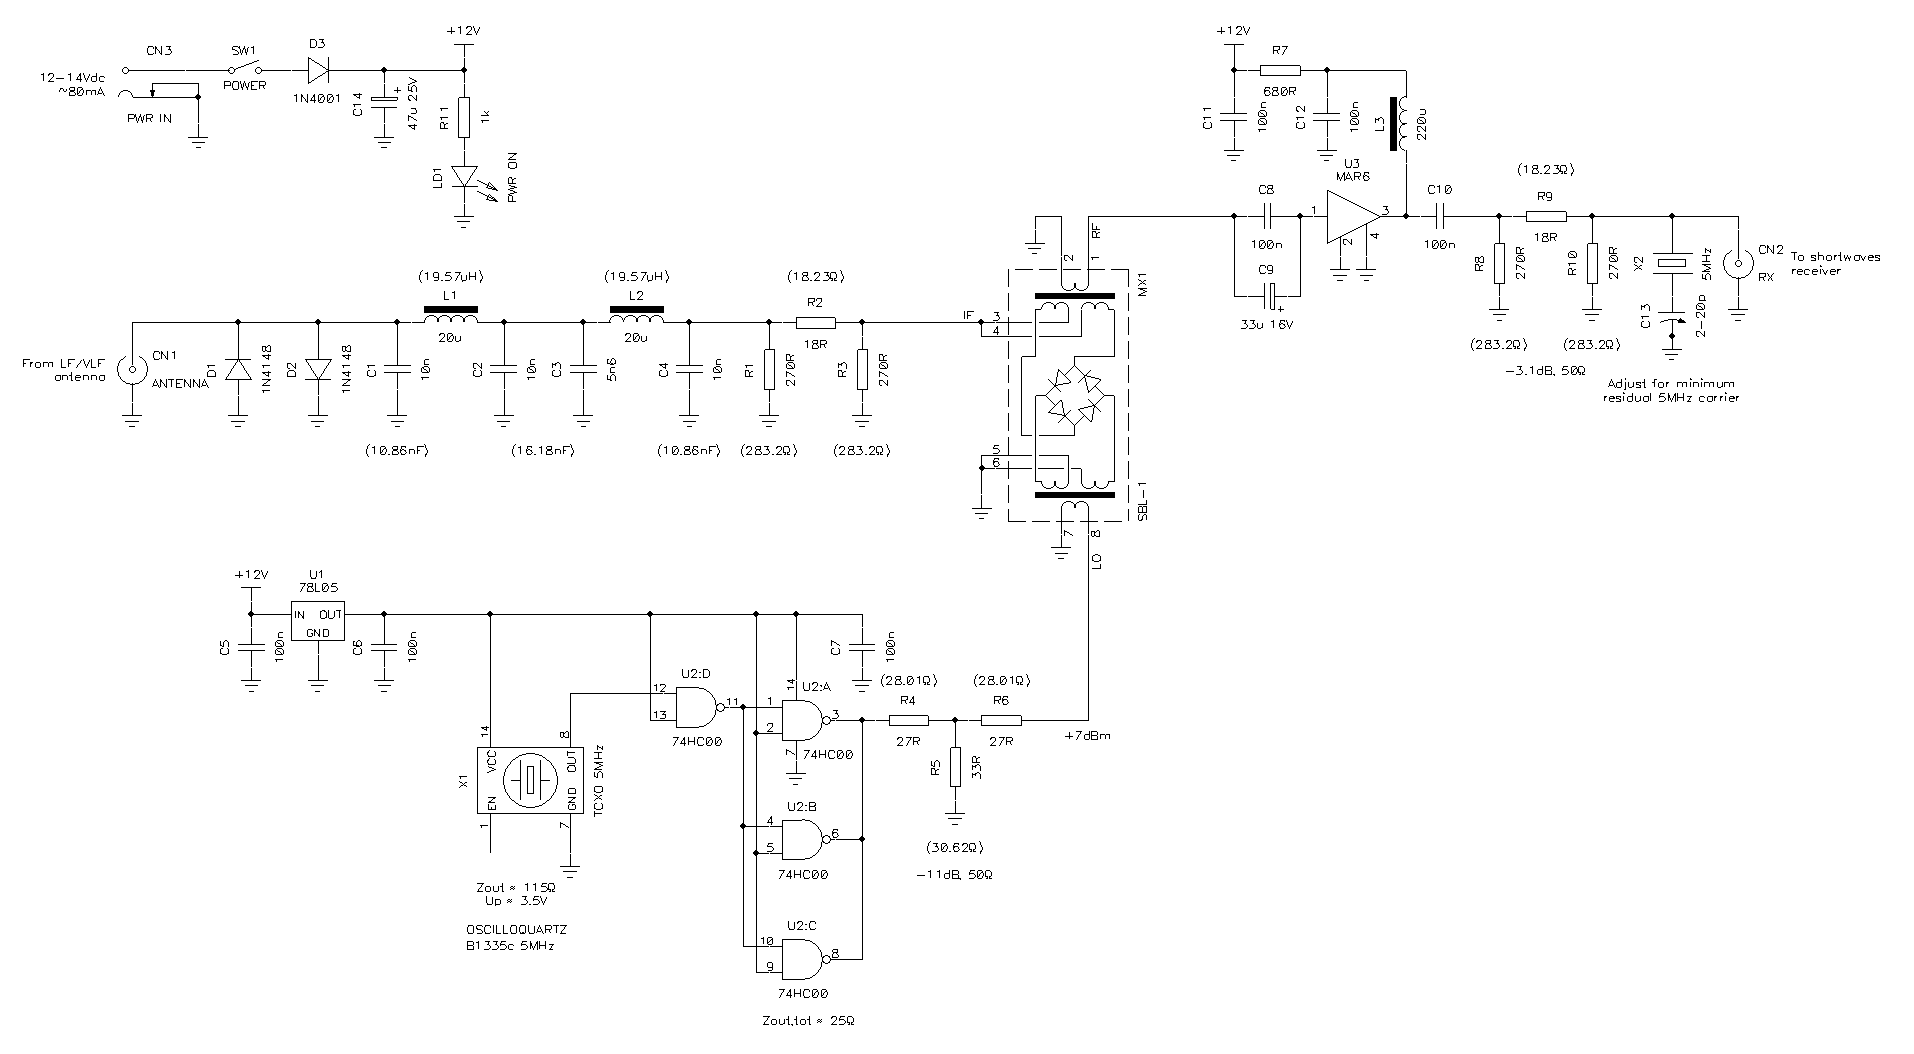 An Up Converter For Receiving Long And Very Waves Unfortunately The Diagrams Do Not Show Internal Circuitry Of Block Diagram Click Full